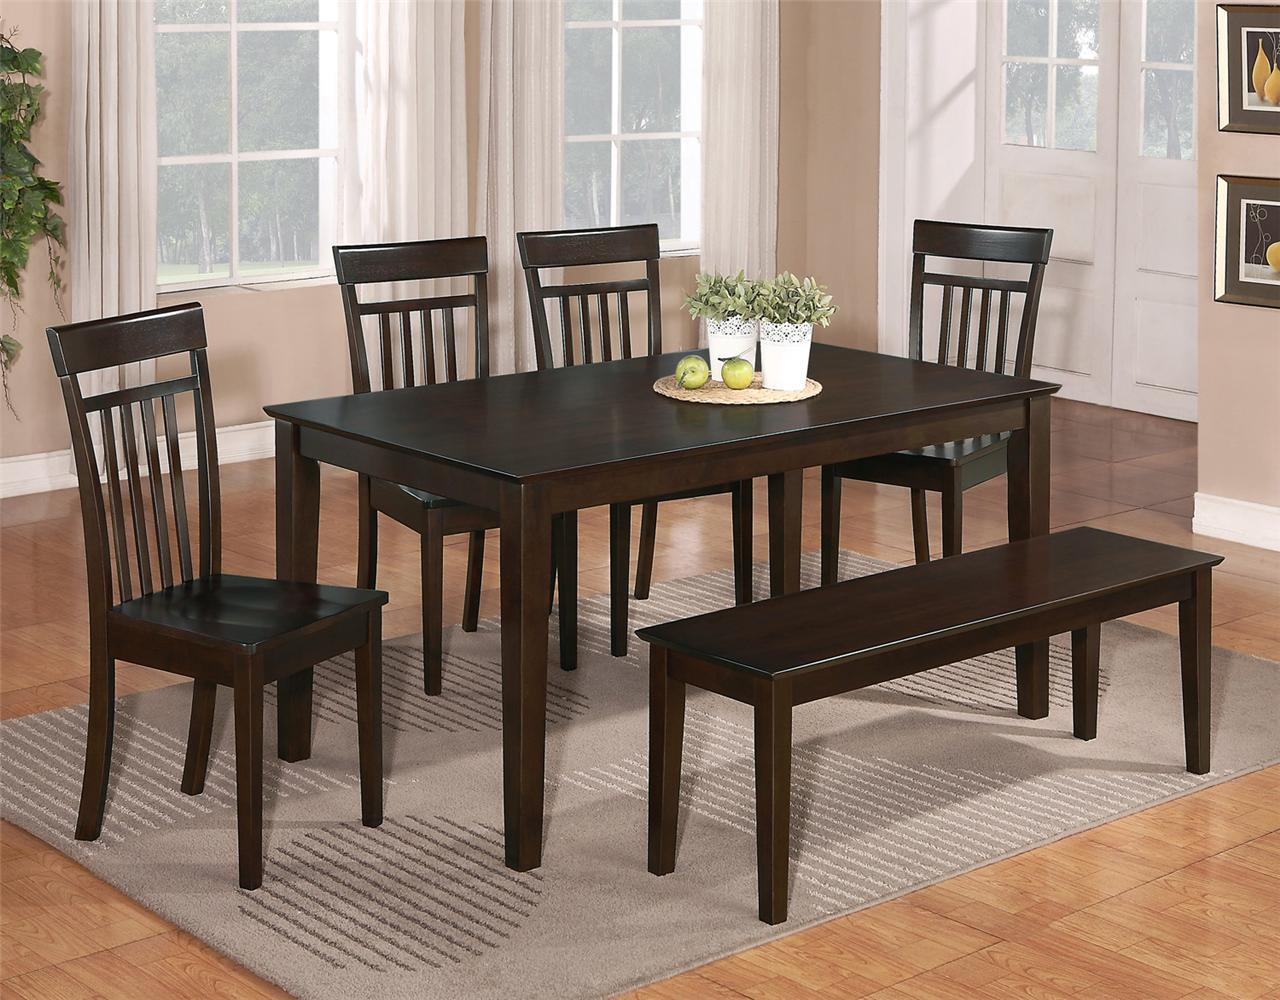 6 Dining Room Chairs 6 Pc Dinette Kitchen Dining Room Set Table W 4 Wood Chair